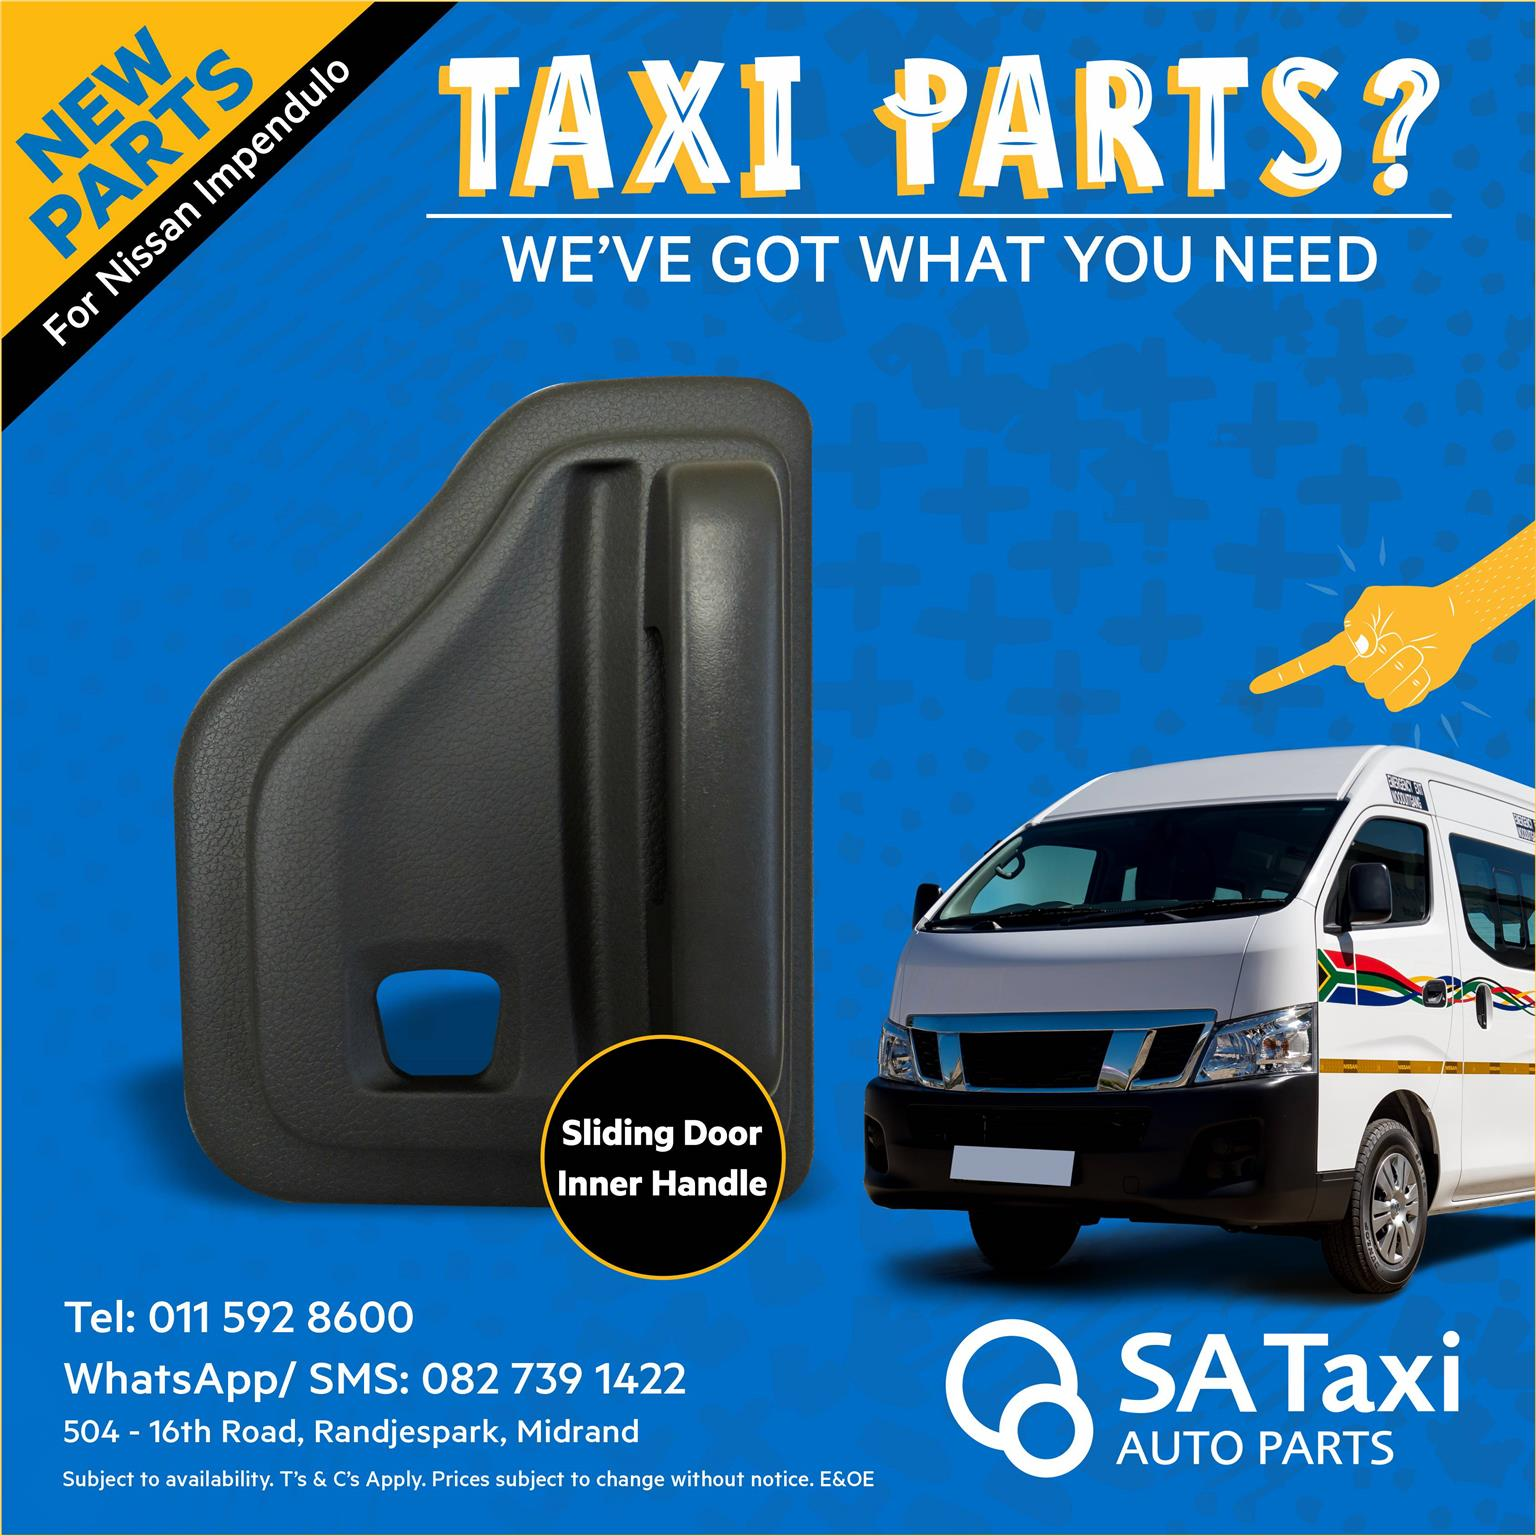 NEW Sliding Door Inner Handle suitable for Nissan Impendulo - SA Taxi Auto Parts quality new spares